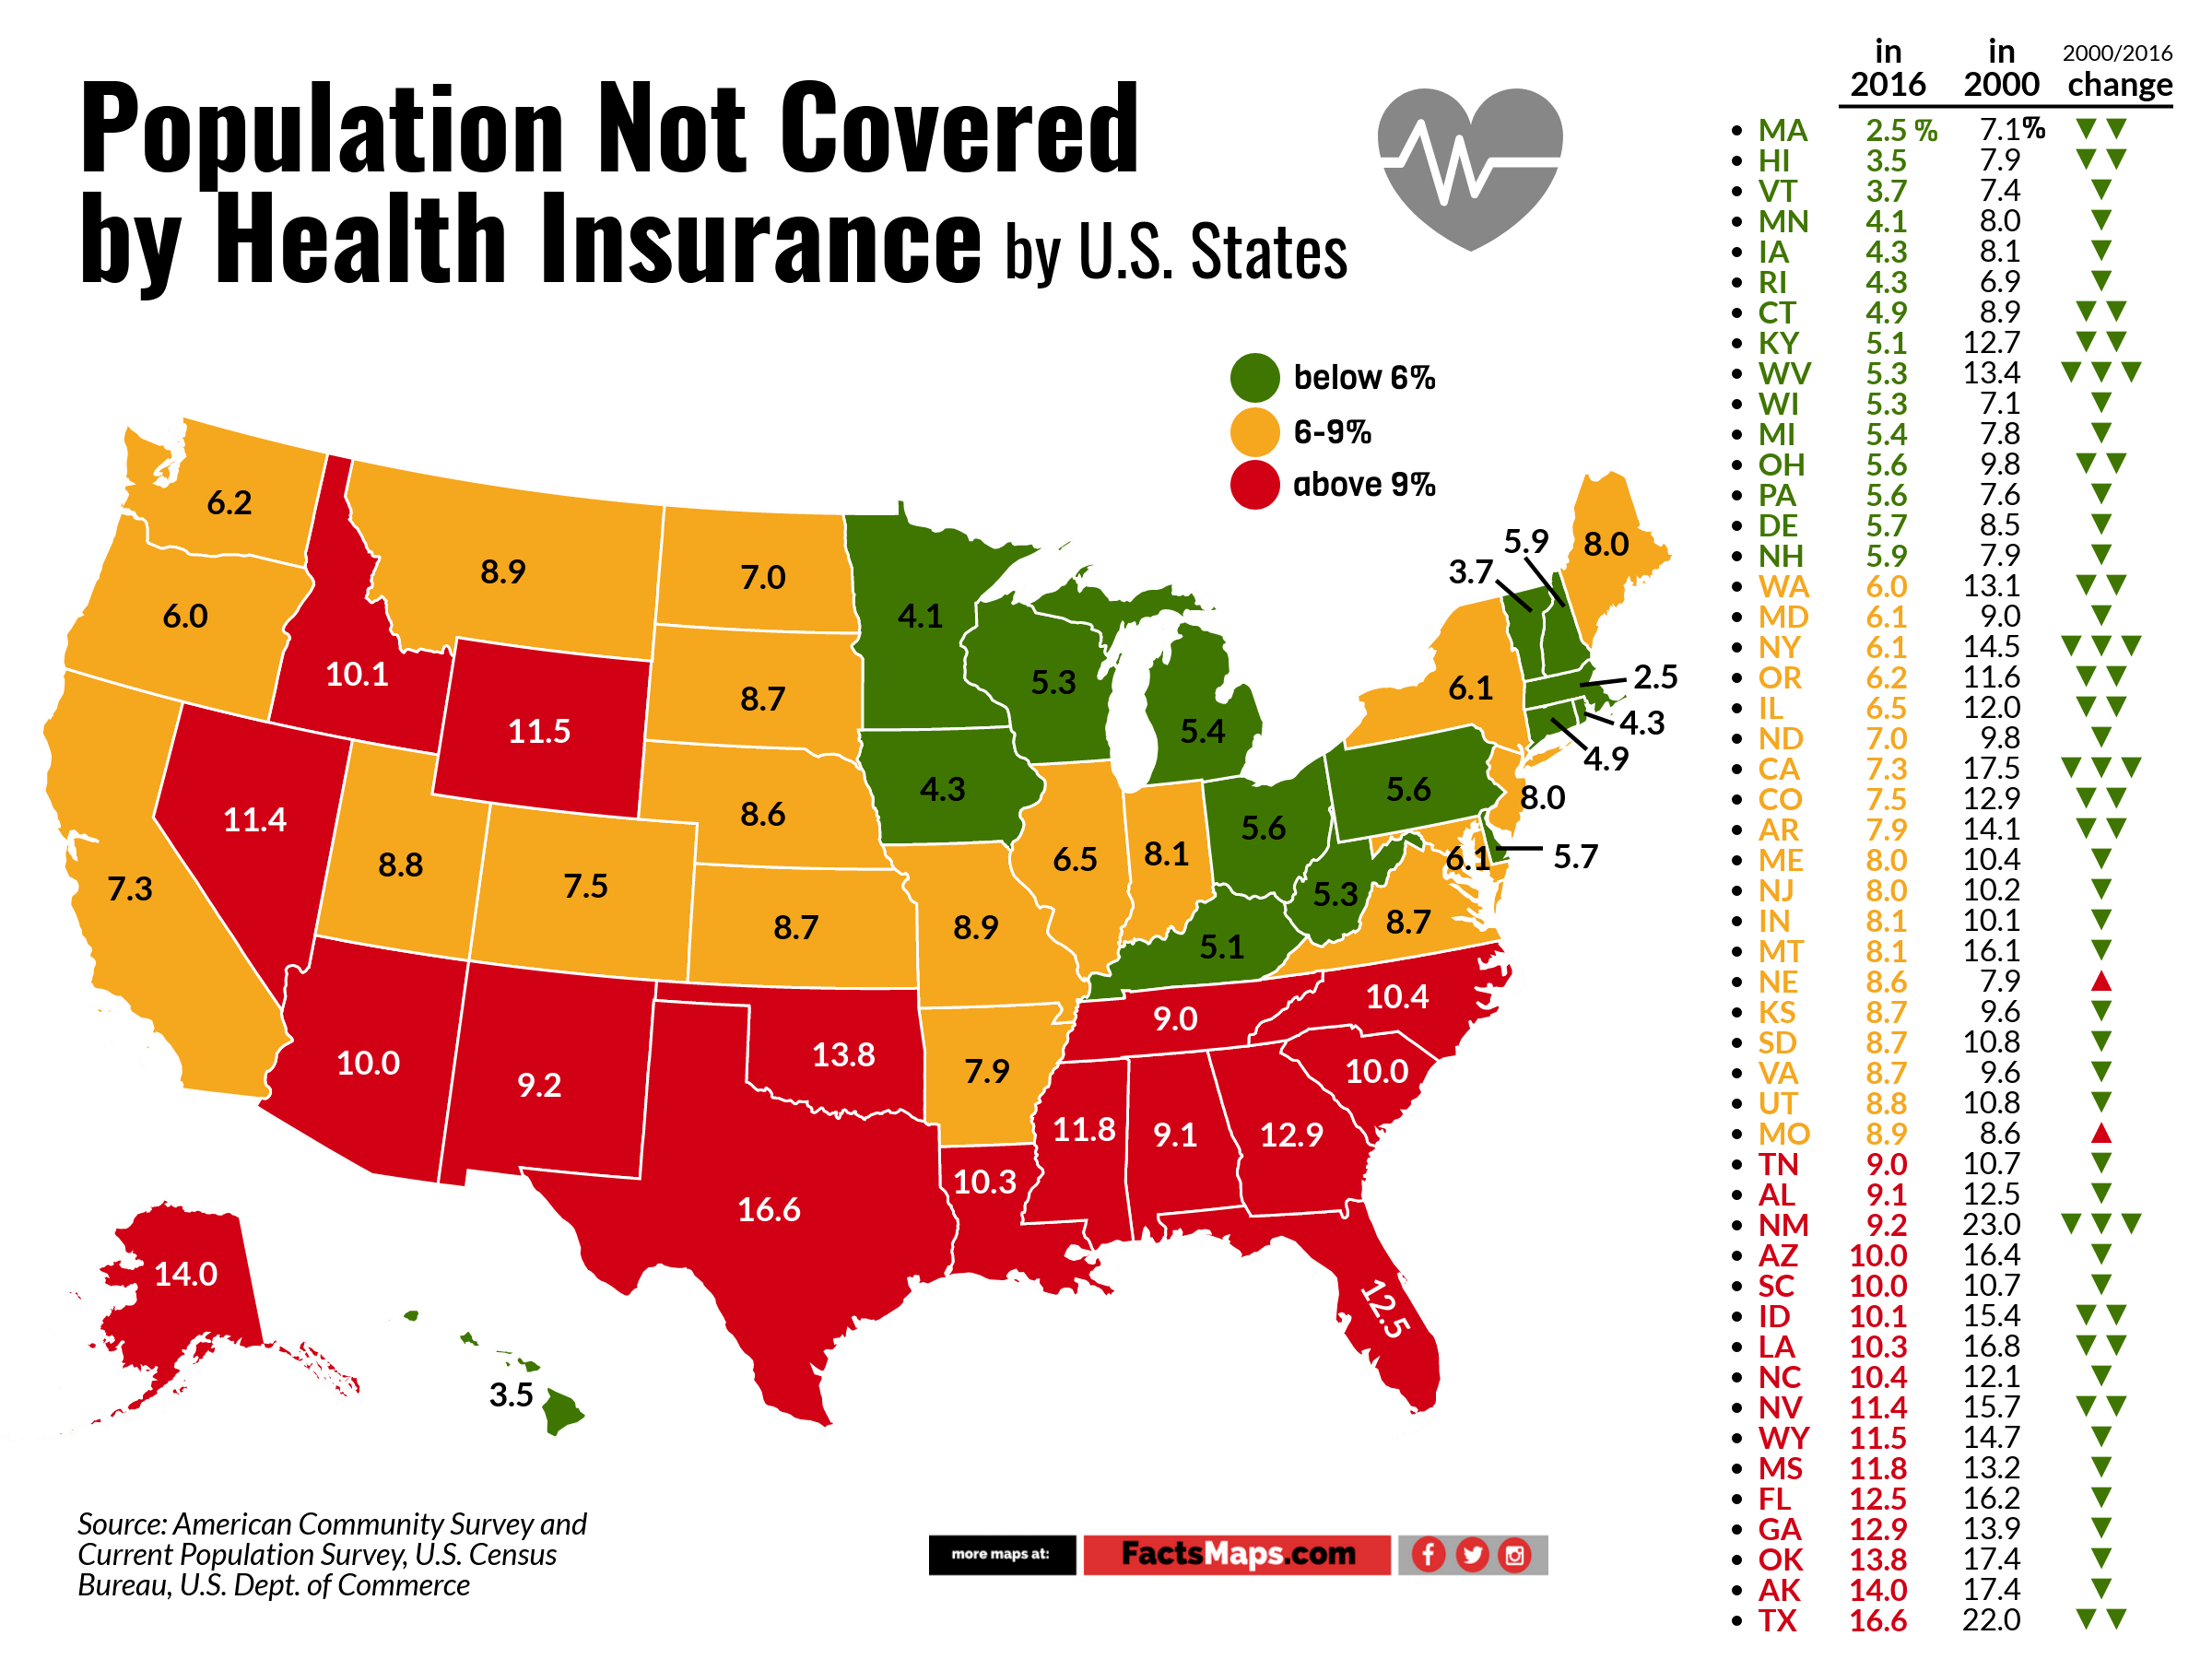 Population Not Covered by Health Insurance by U.S. States